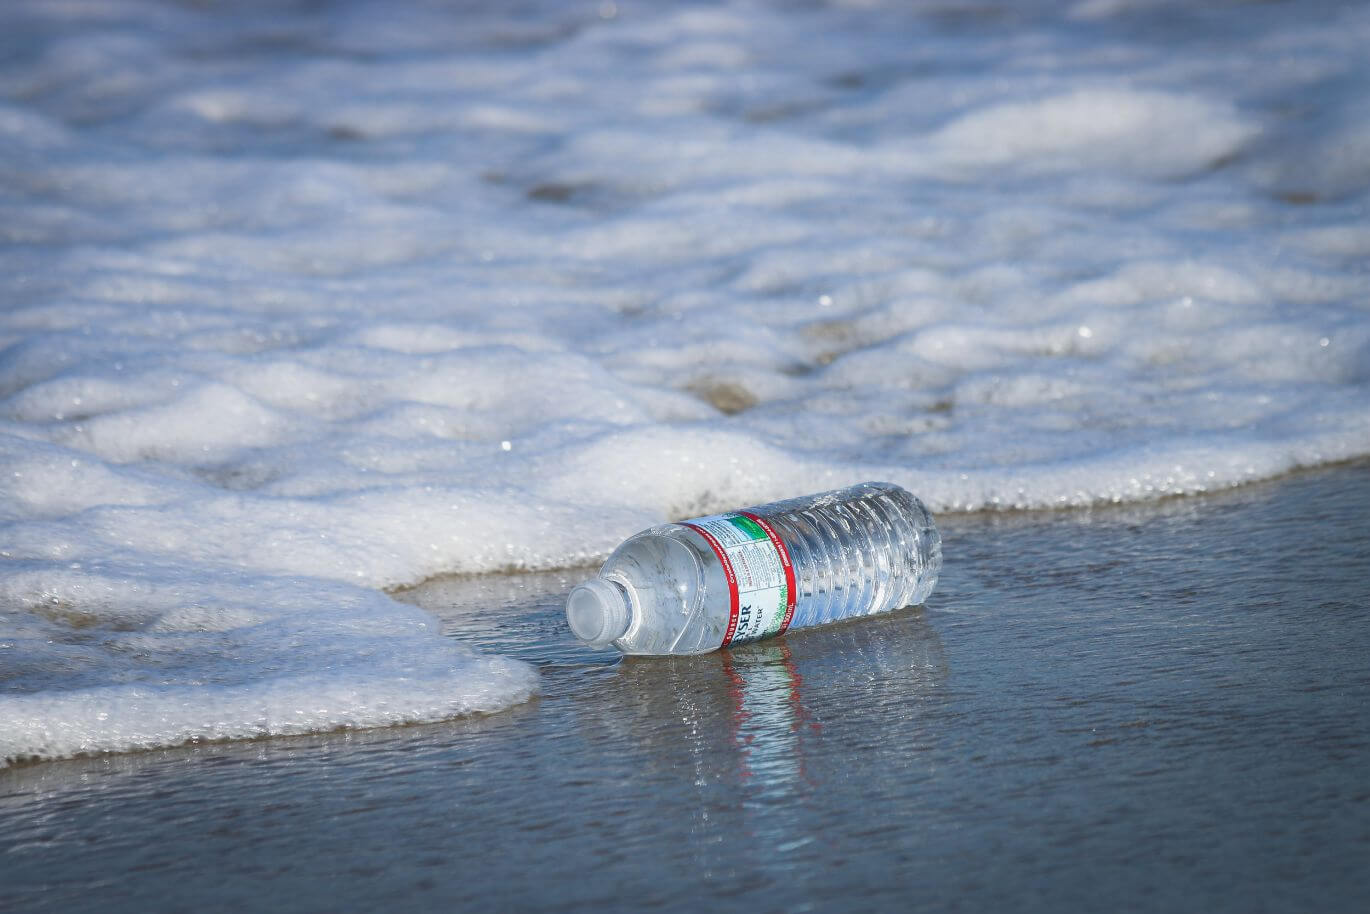 microplastic pollution through a plastic bottle washed ashore on a beach